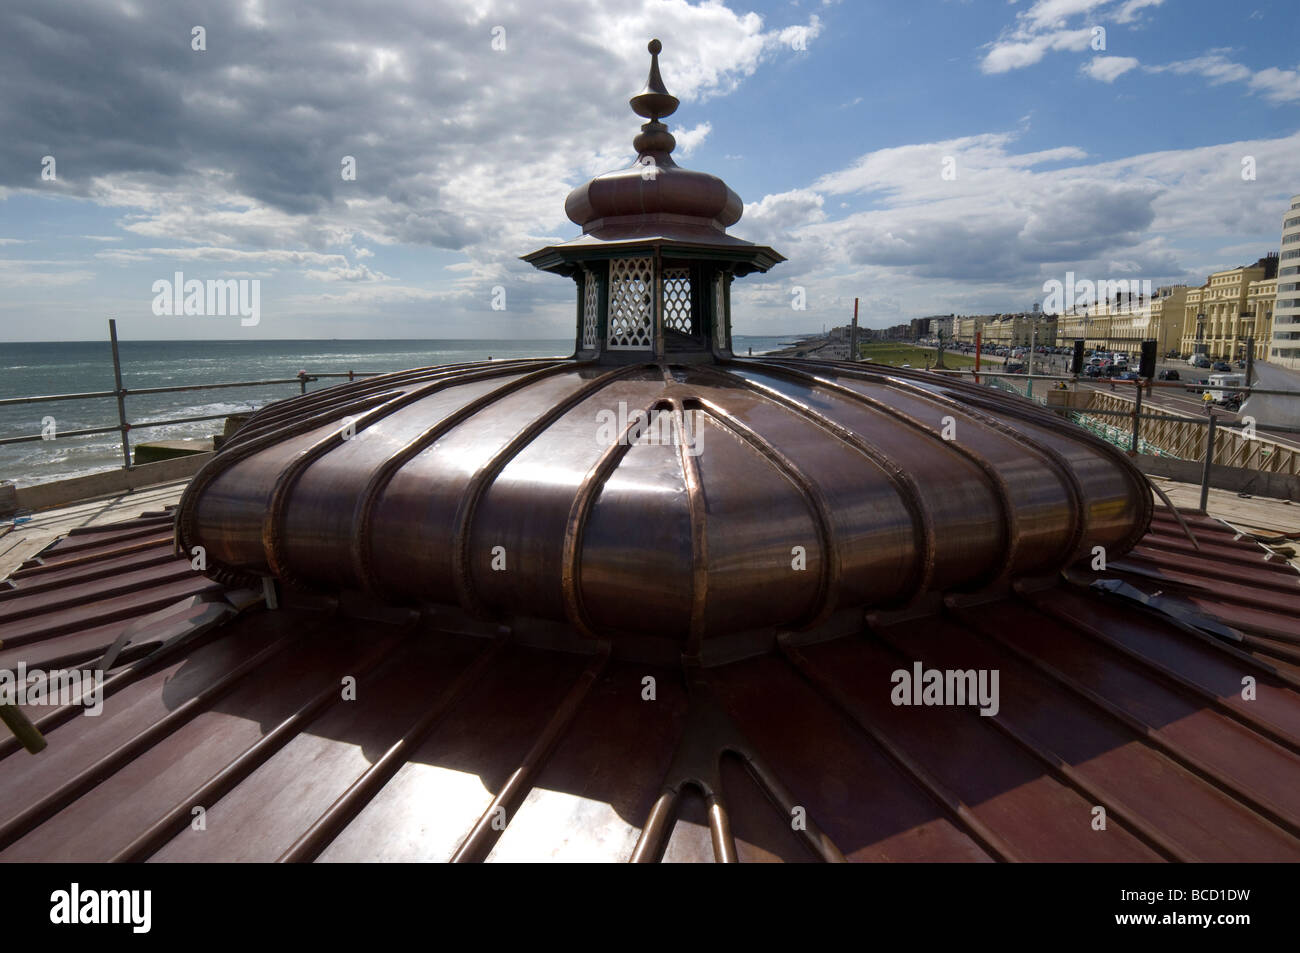 The new copper roof of a Victorian bandstand on Brighton and Hove seafront - Stock Image